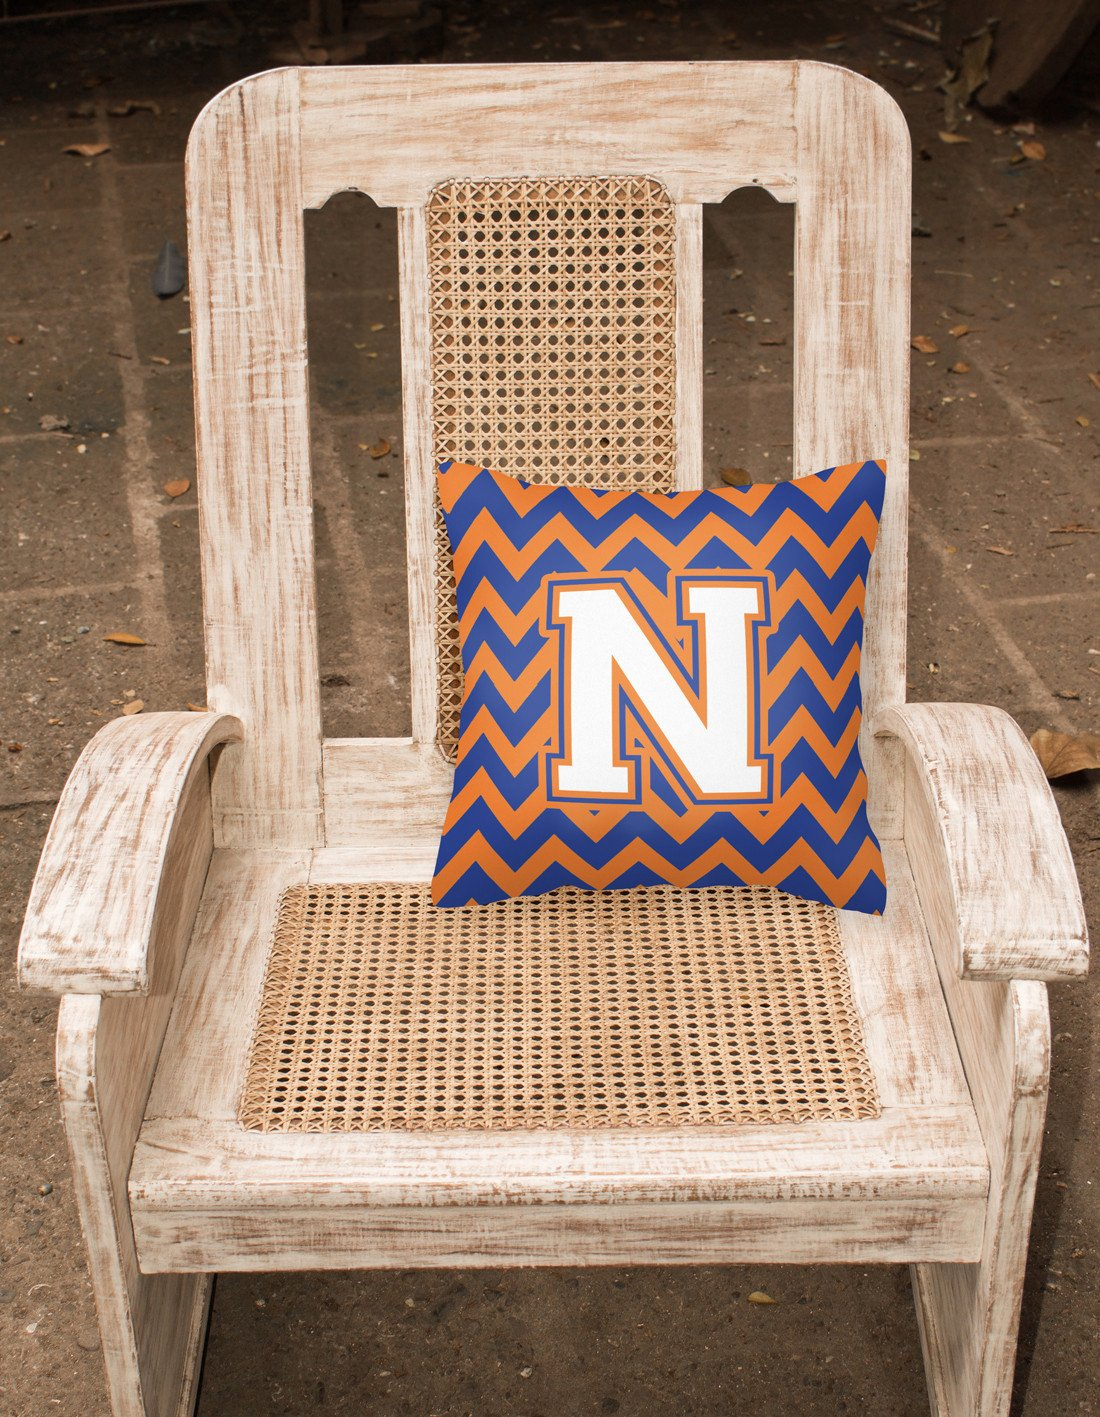 Letter N Chevron Blue and Orange #3 Fabric Decorative Pillow CJ1060-NPW1414 by Caroline's Treasures